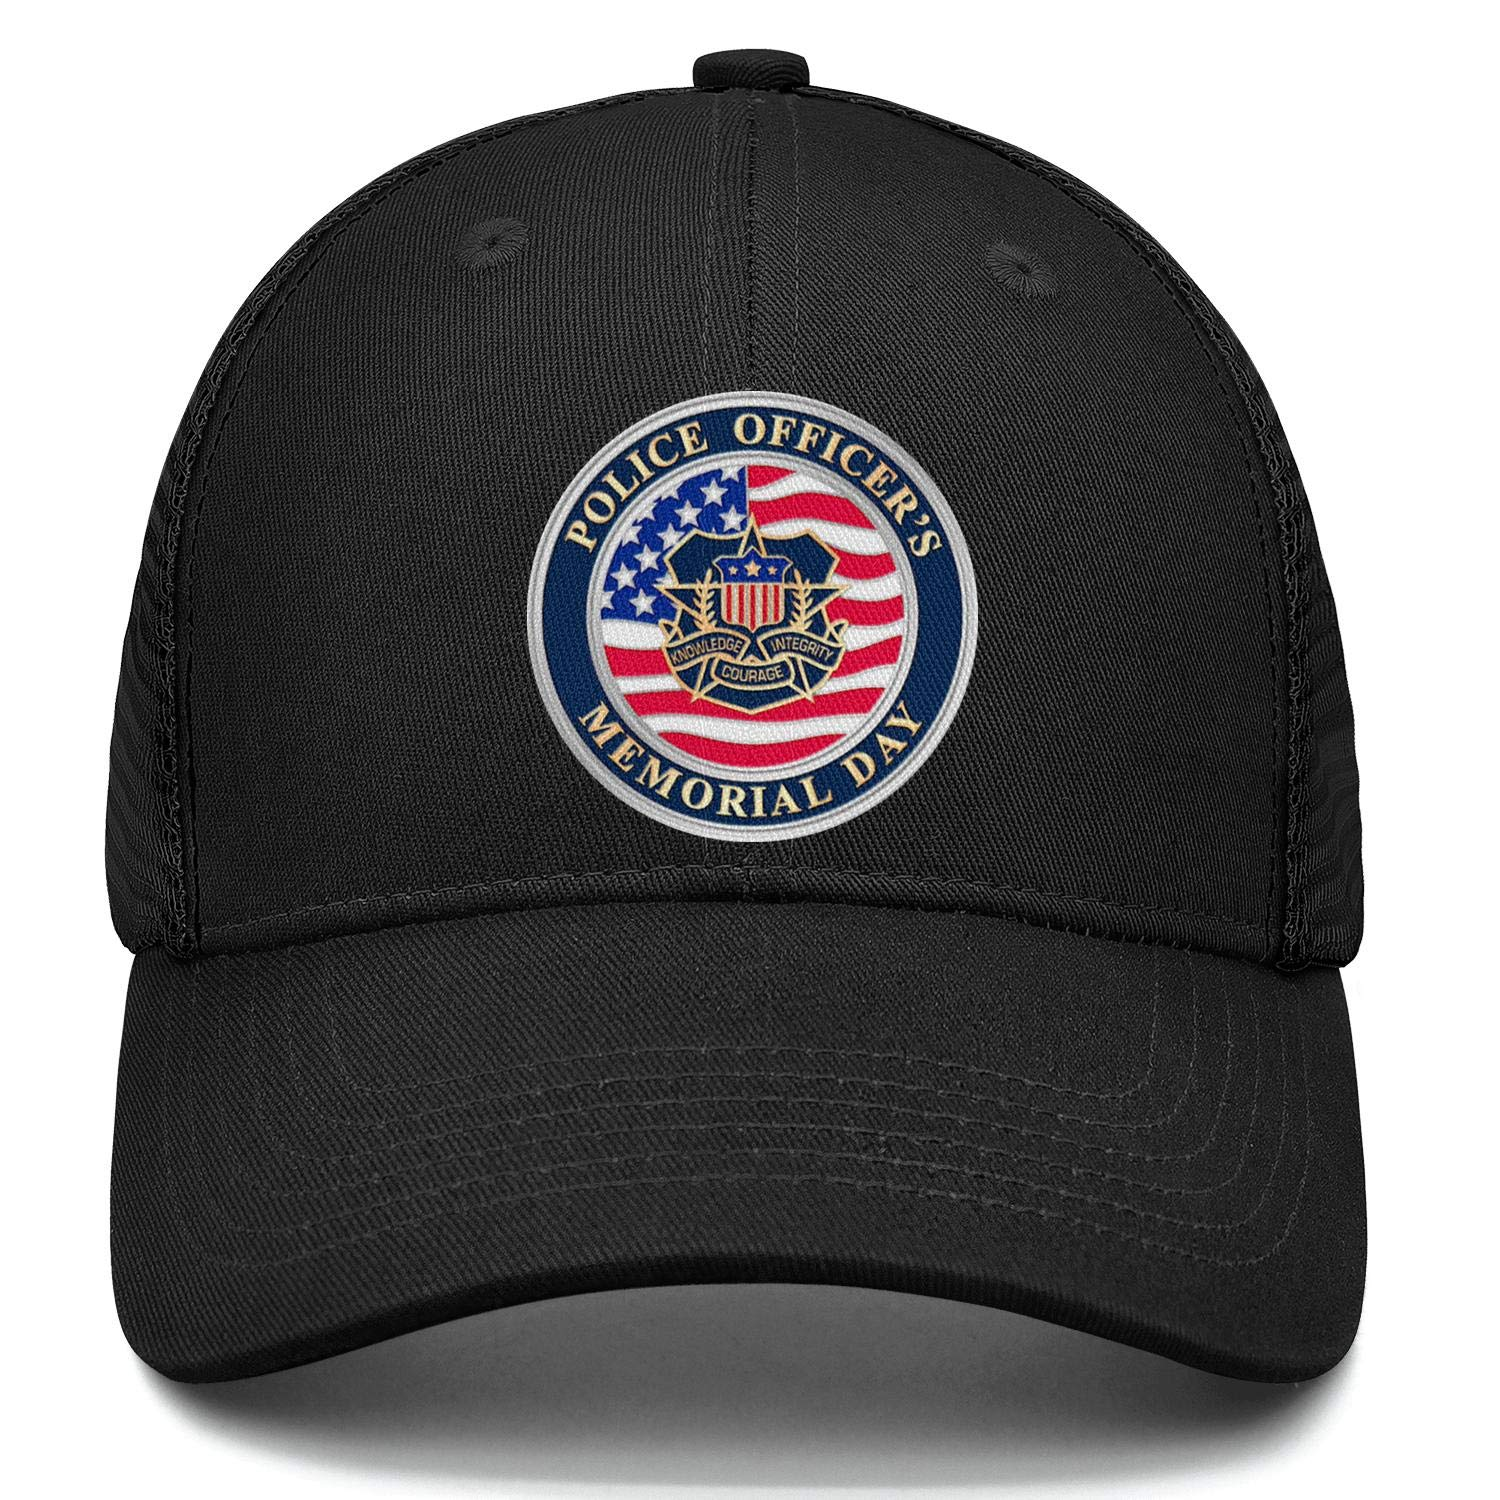 Peace Officers Memorial Day May 15 Basketball Cap Adjustable Unisex Mesh Cap Duck Tongue Caps Stylish Hats